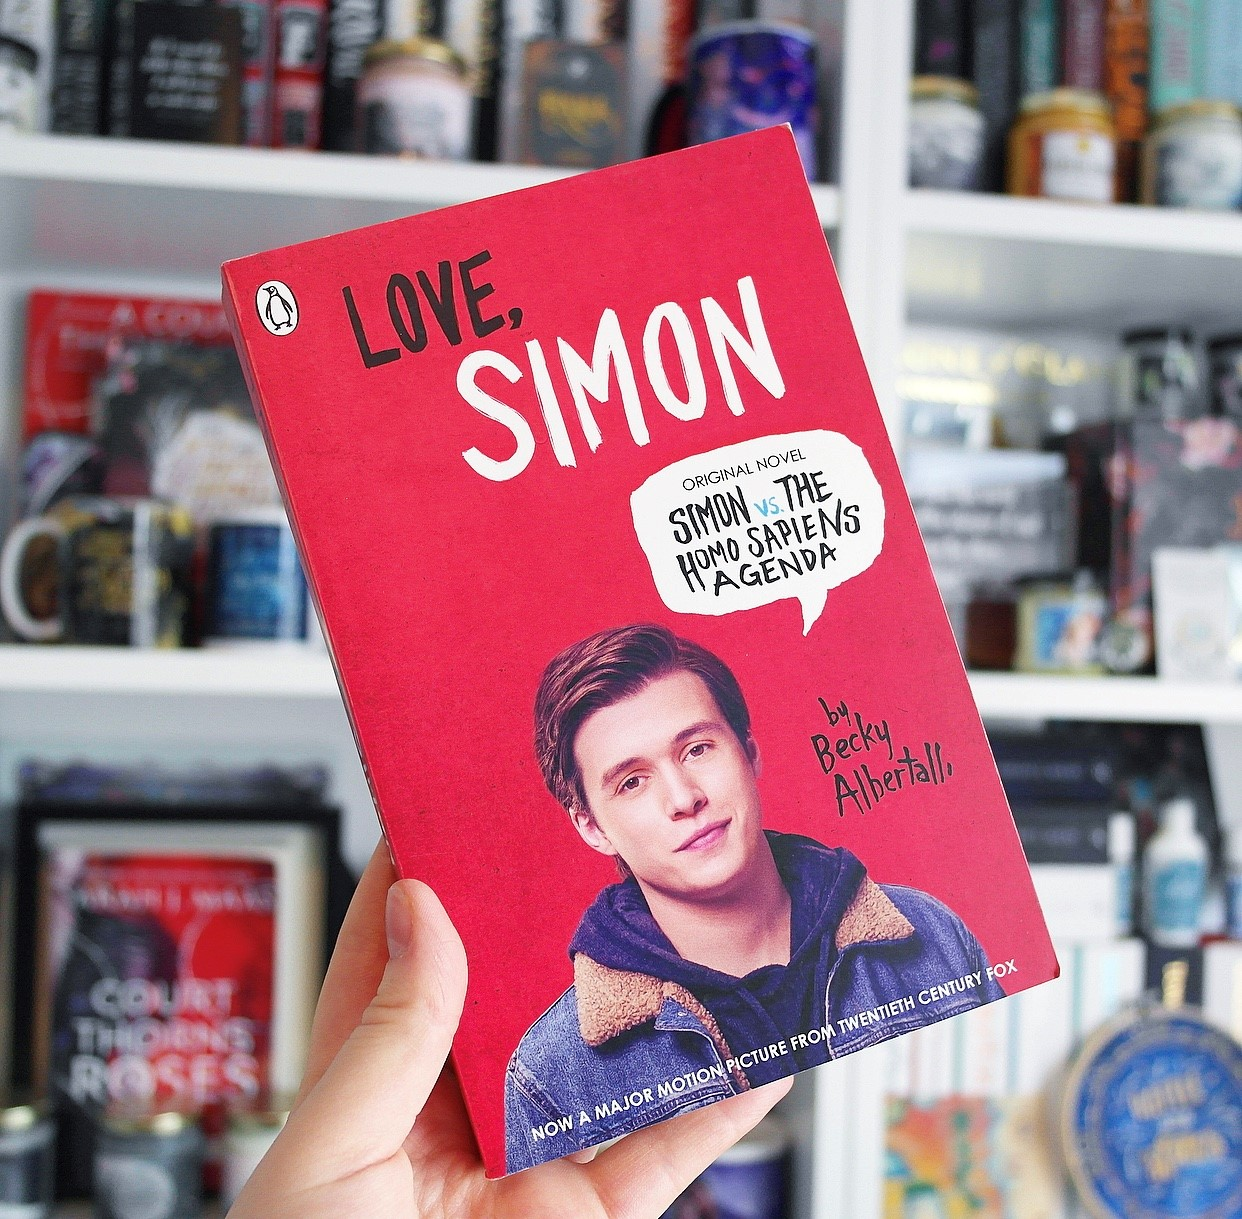 The fourth YA contemporary book recommendation,the book Love, Simon by Becky Albertalli.